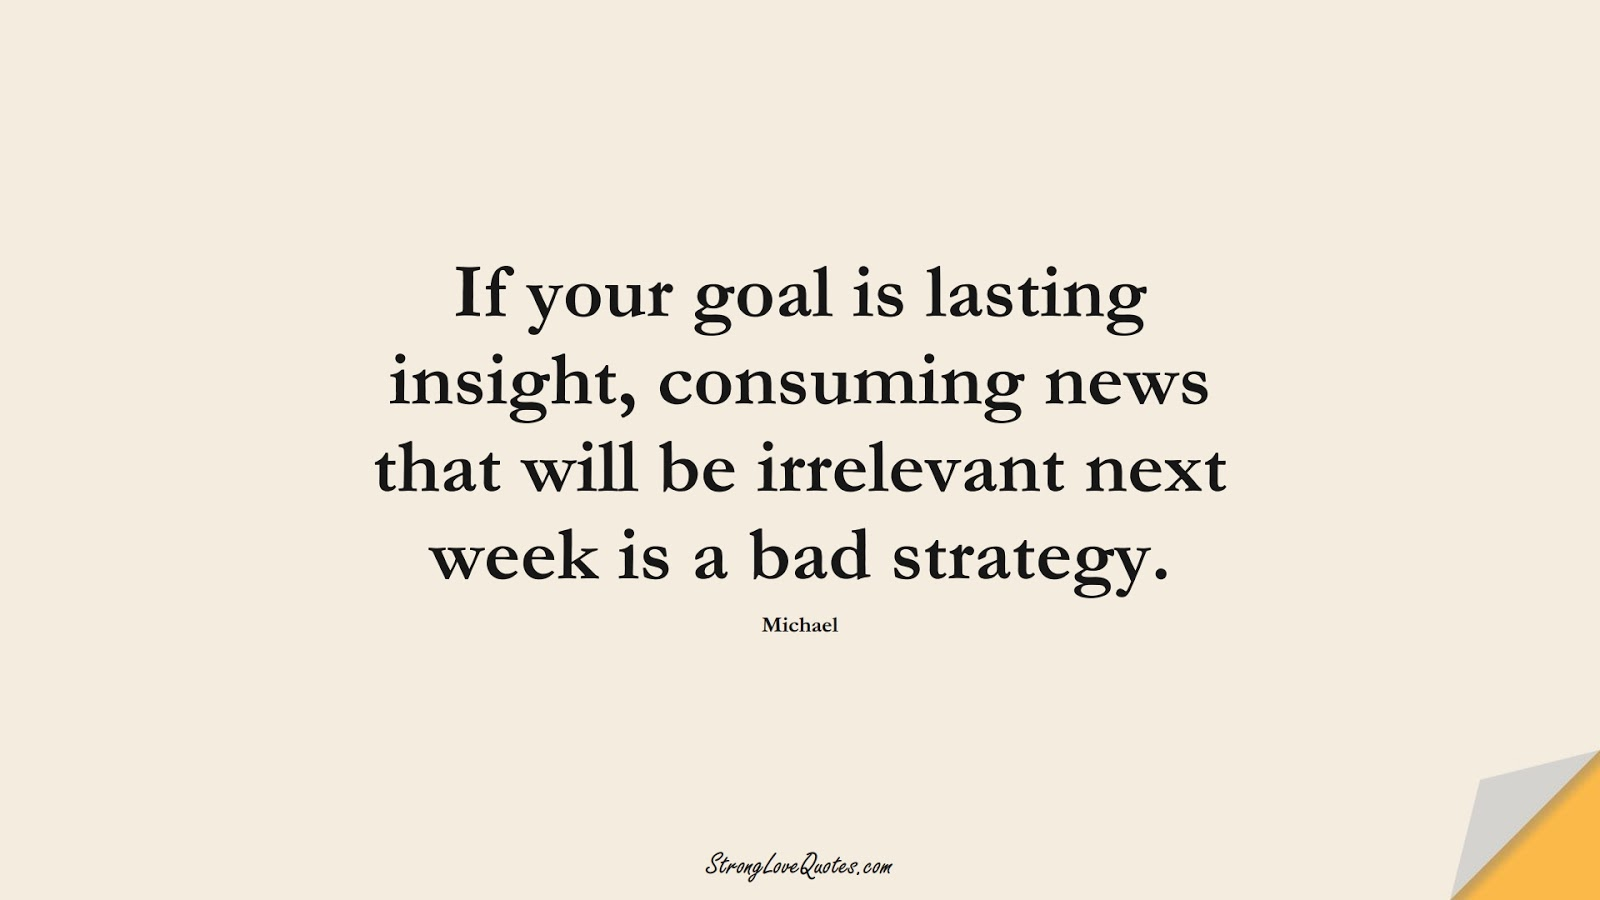 If your goal is lasting insight, consuming news that will be irrelevant next week is a bad strategy. (Michael);  #KnowledgeQuotes